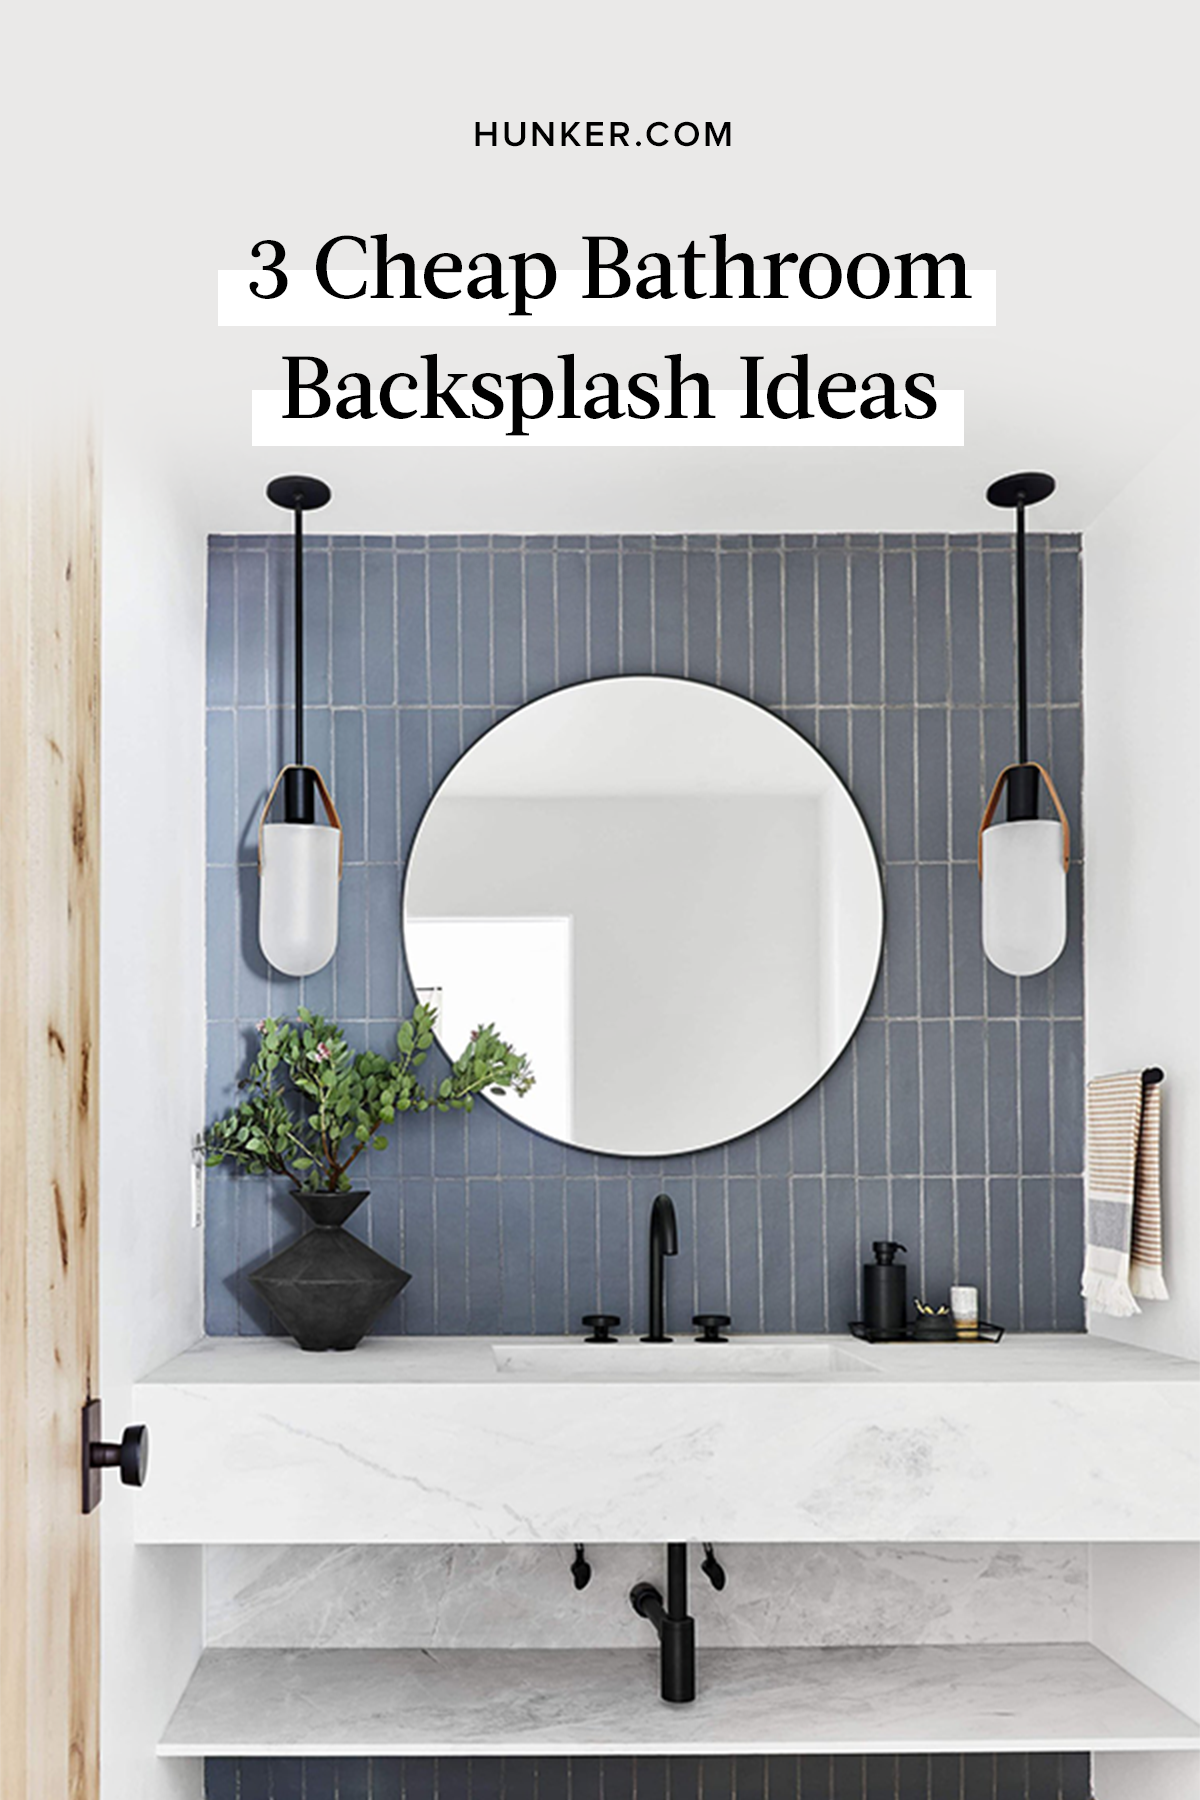 Chic Yet Affordable 3 Cheap Bathroom Backsplash Ideas Hunker Bathroom Interior Design Modern Bathroom Design House Bathroom